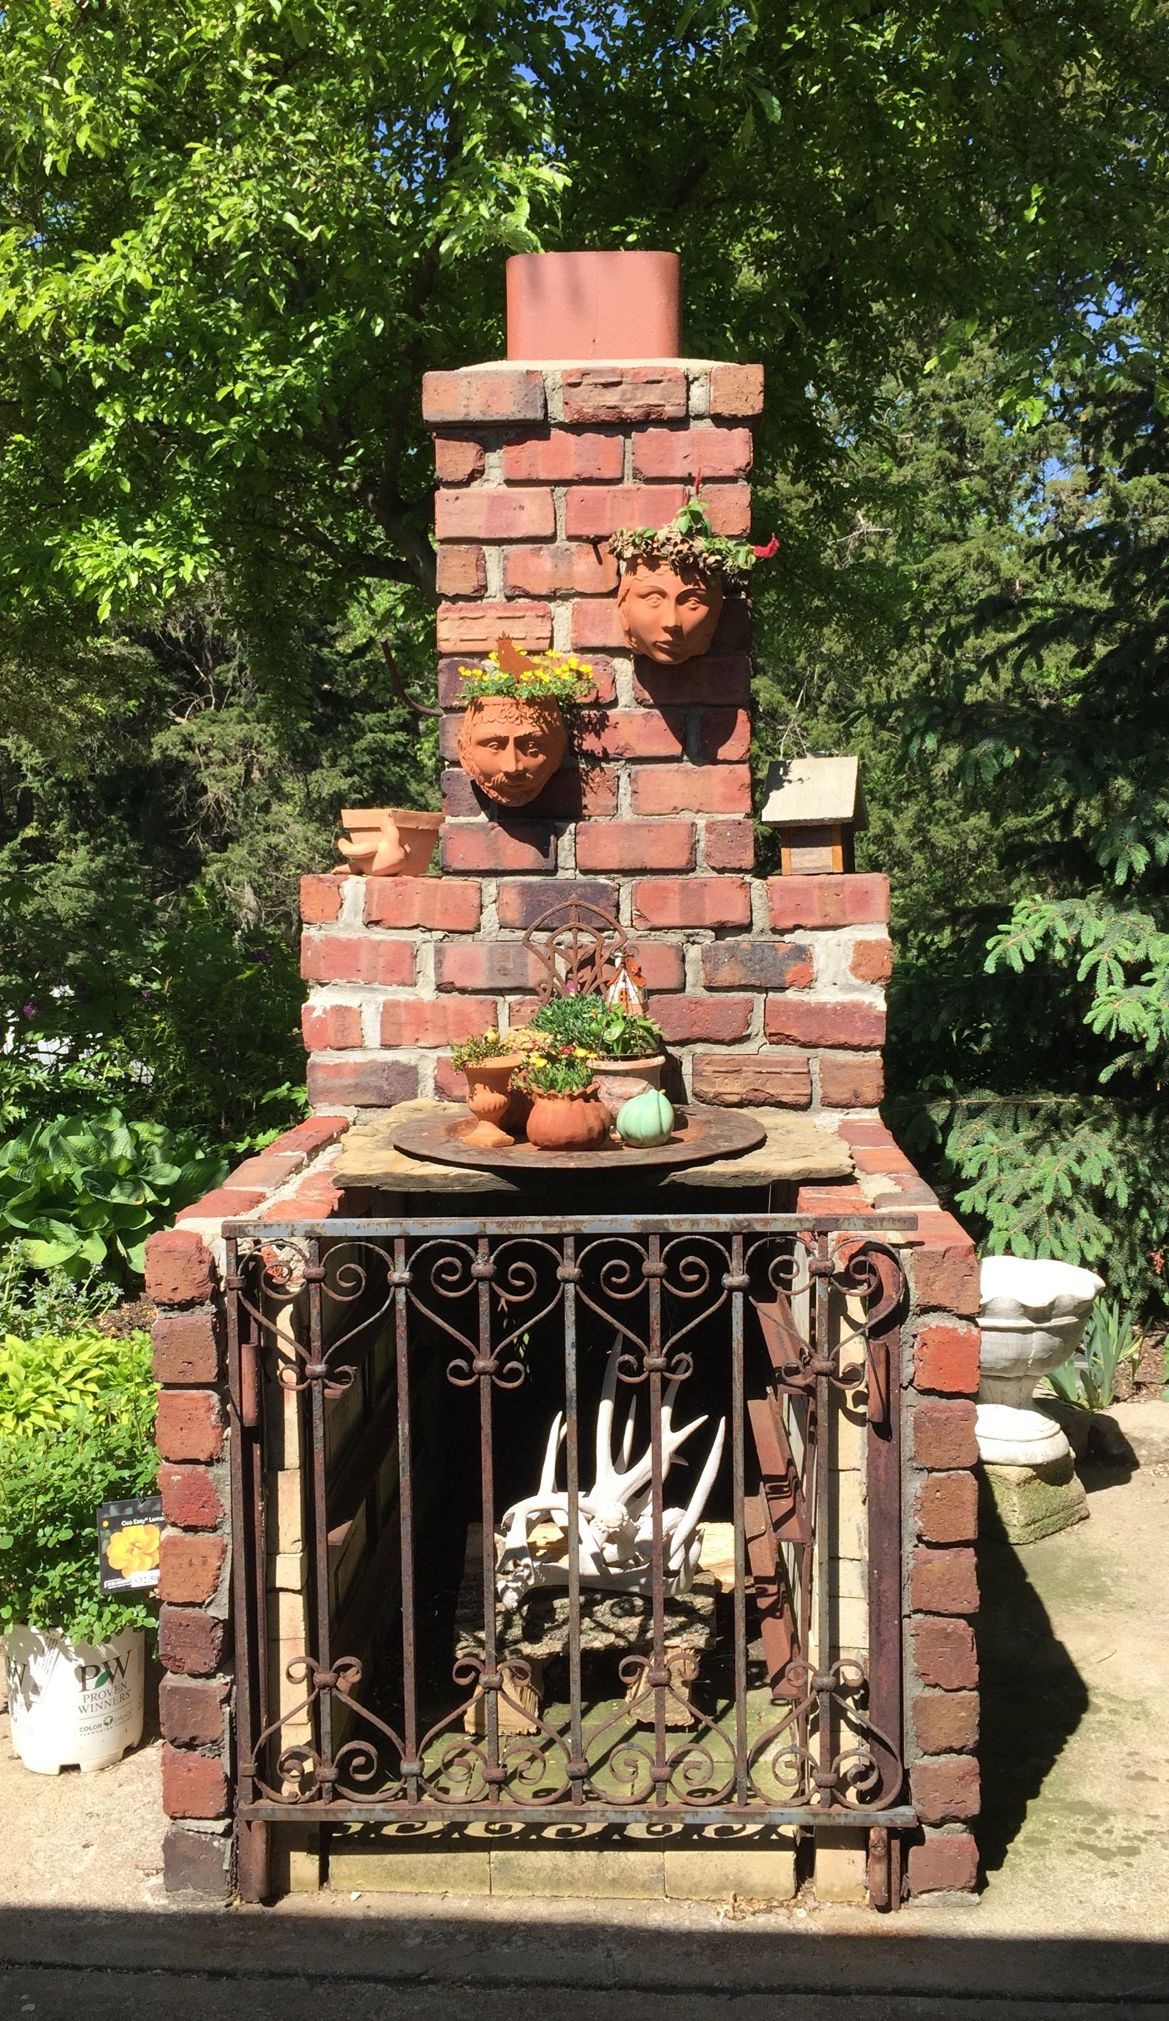 Creative Chiminea Idea Constructed With Bricks And A Vintage Iron Gate In The Red Cedar Country Gardens In Stillw Downloadable Art Country Gardening Art Design